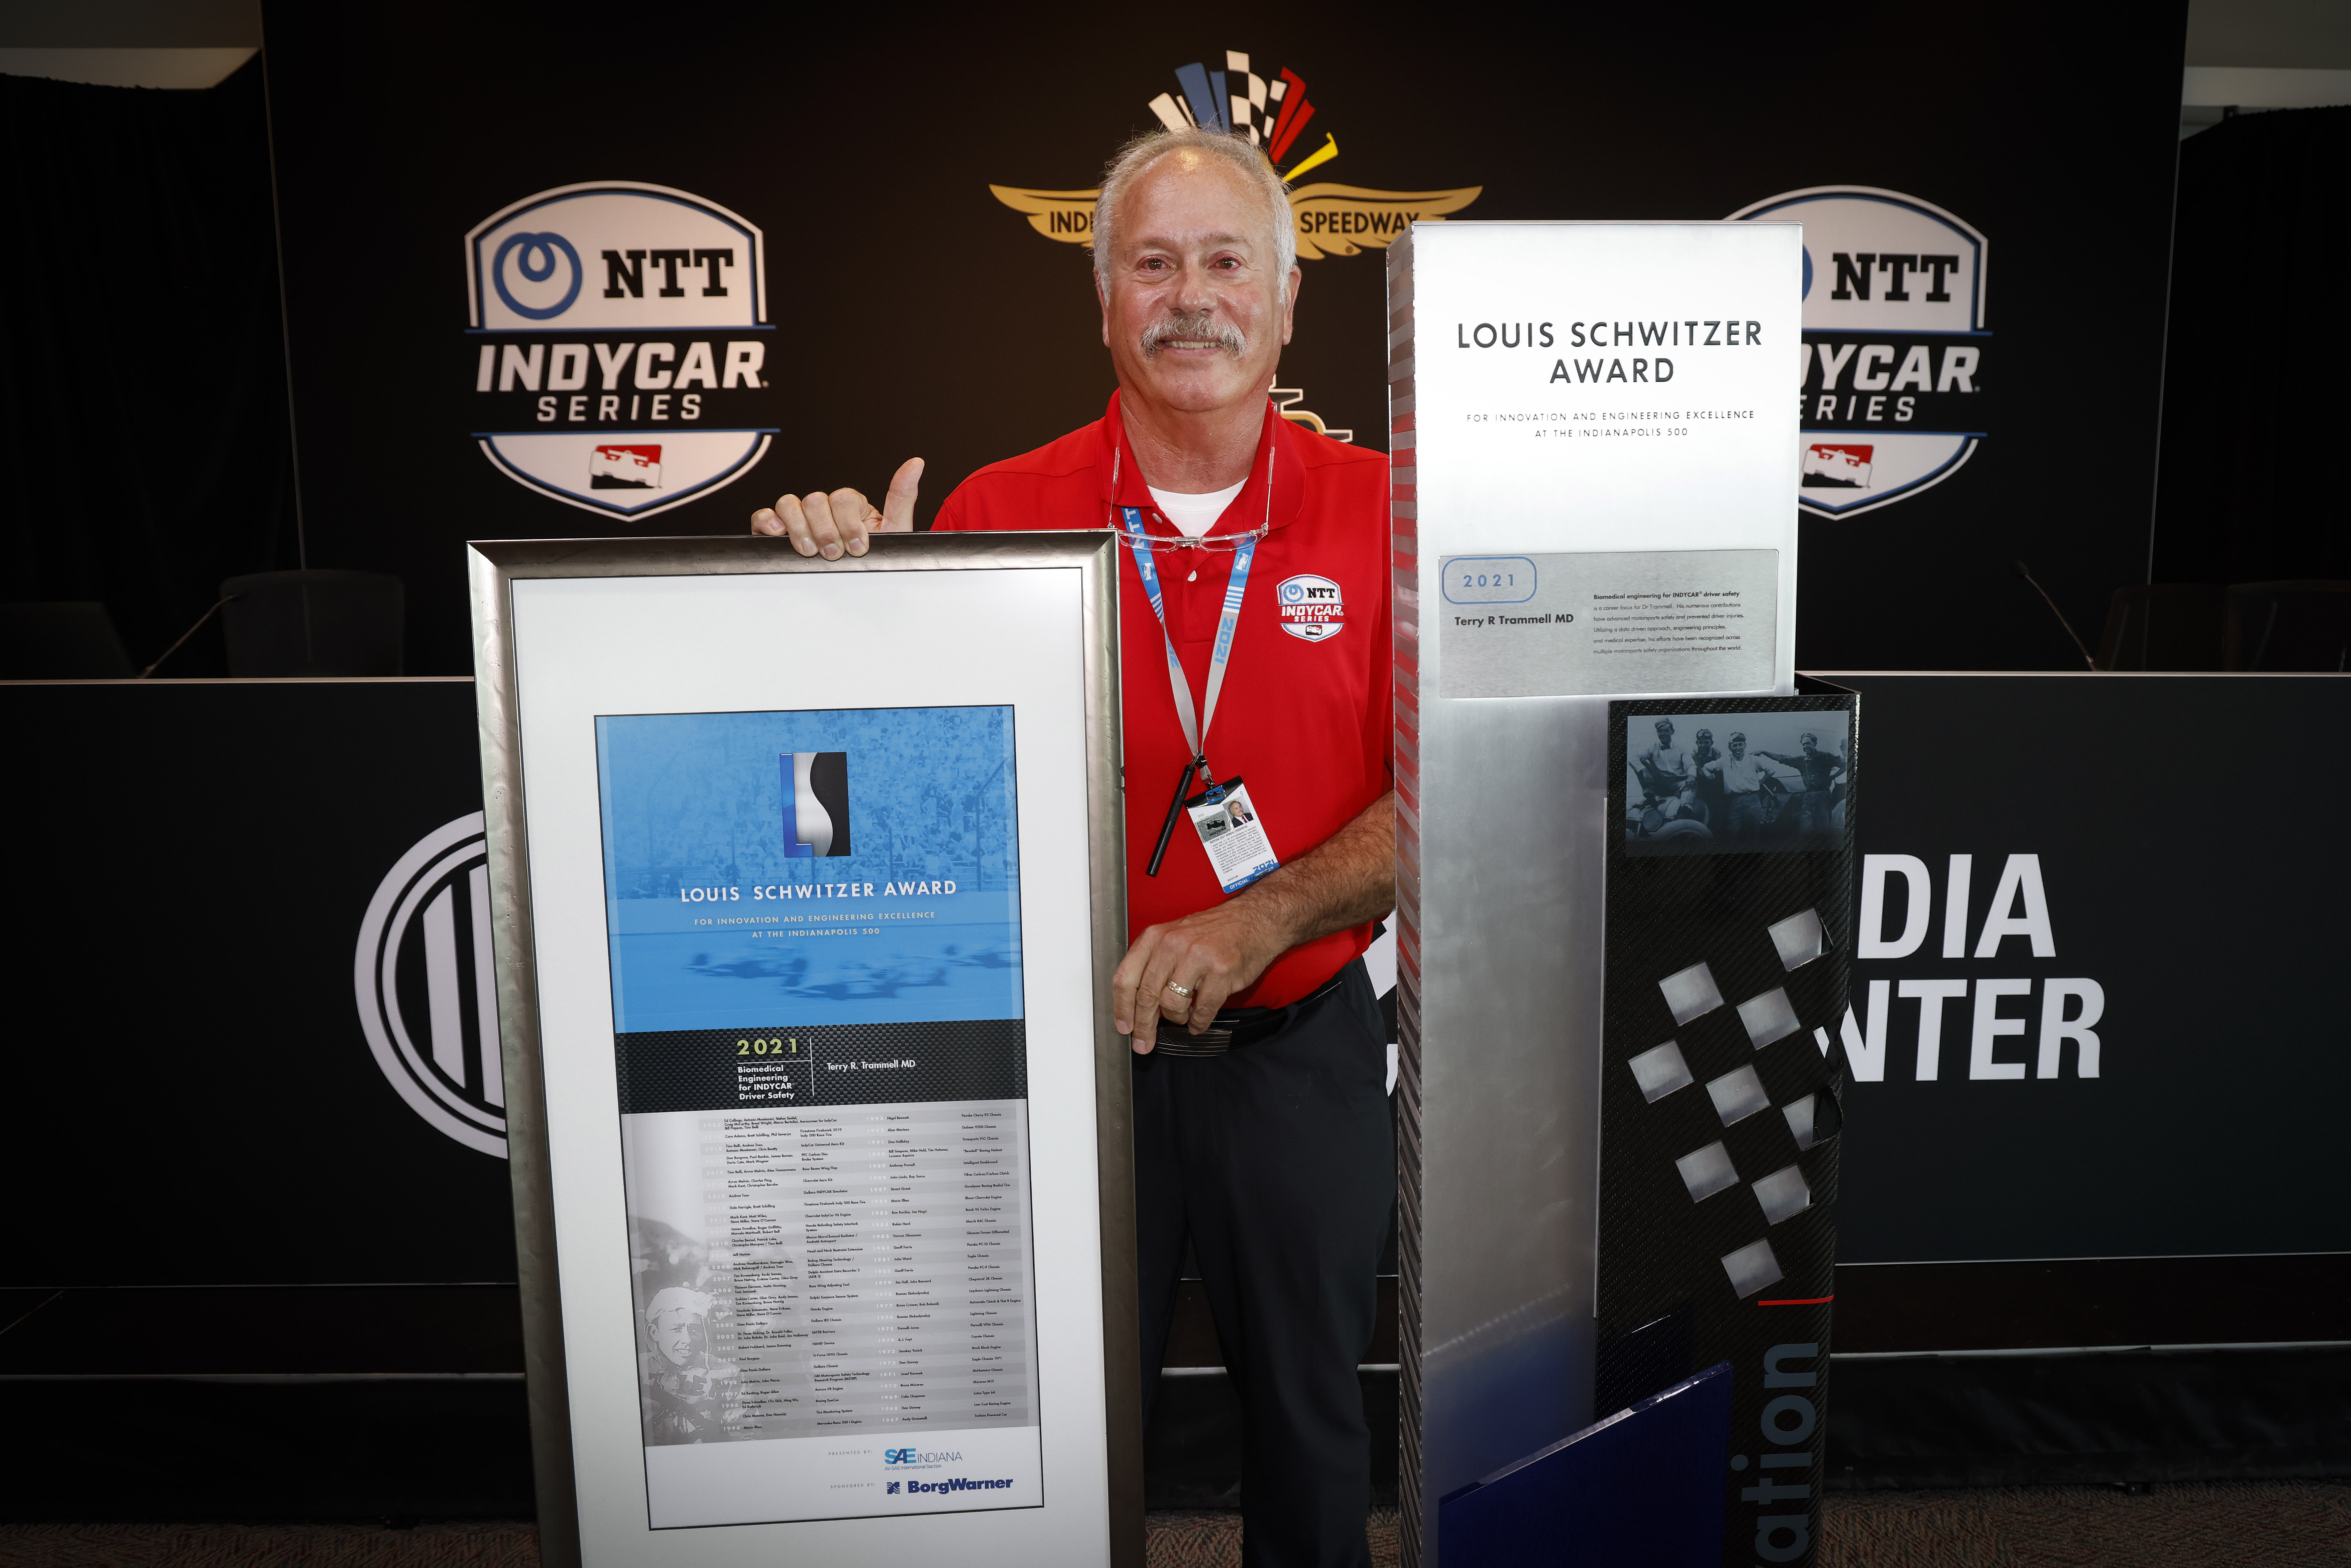 Man stands with large plaque against black logo backdrop